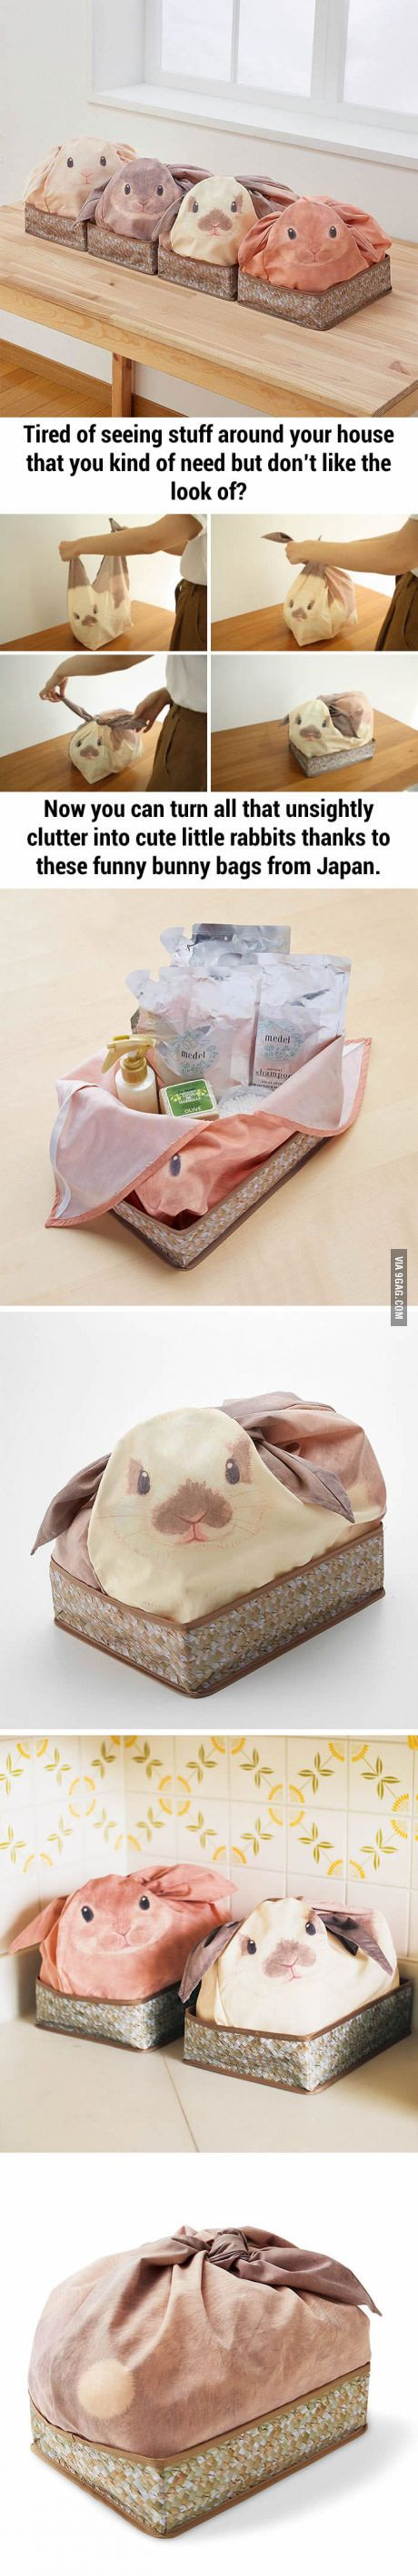 Bunny Bags From Japan That Turn Your Household Stuff Into Rabbits- I NEED THIS